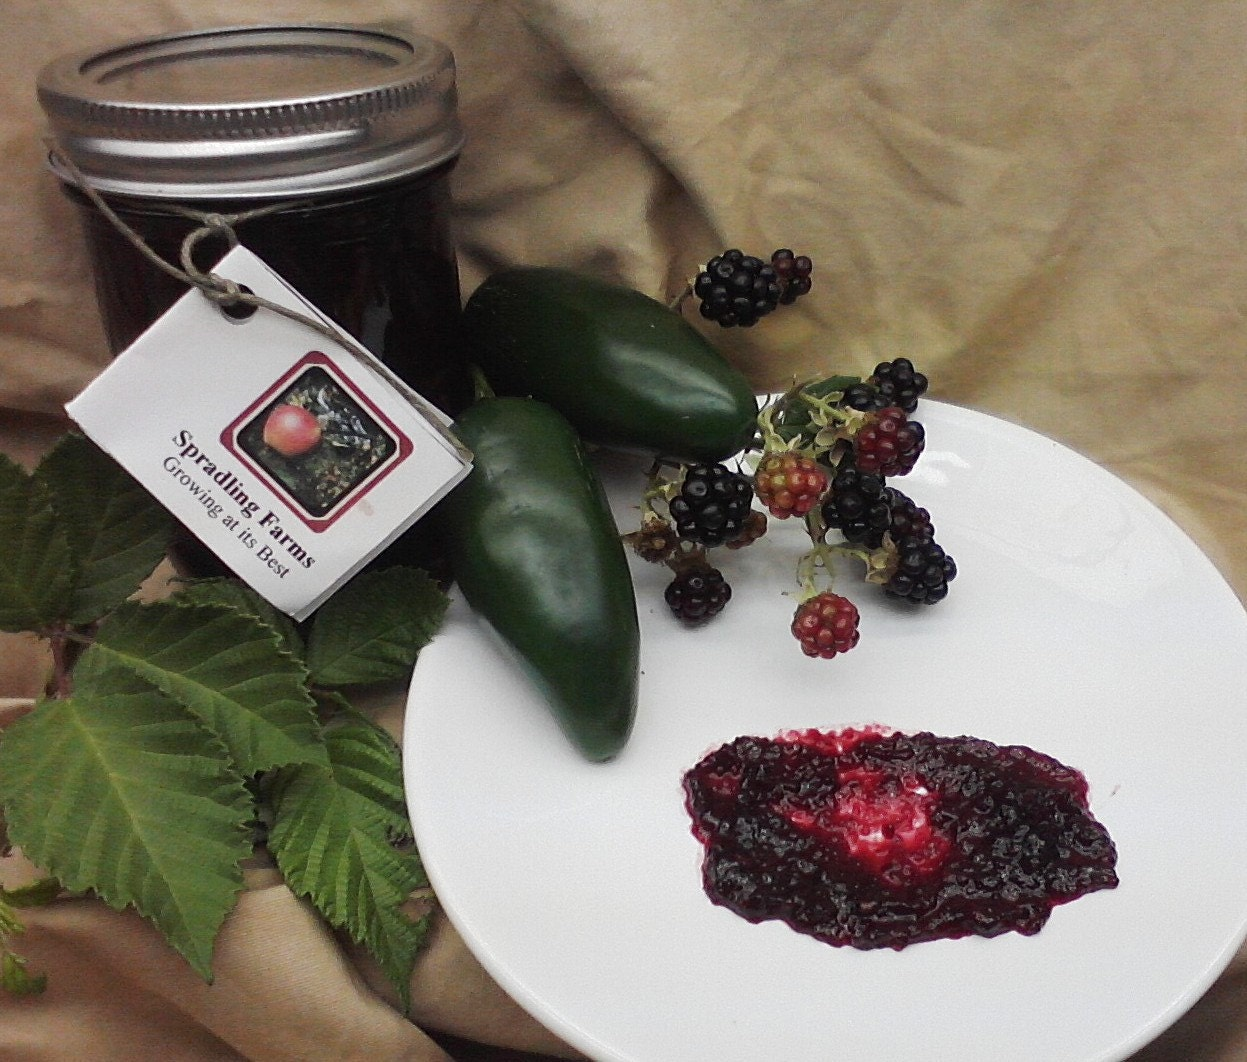 Half Pint jar of Jalapeno Blackberry Jam